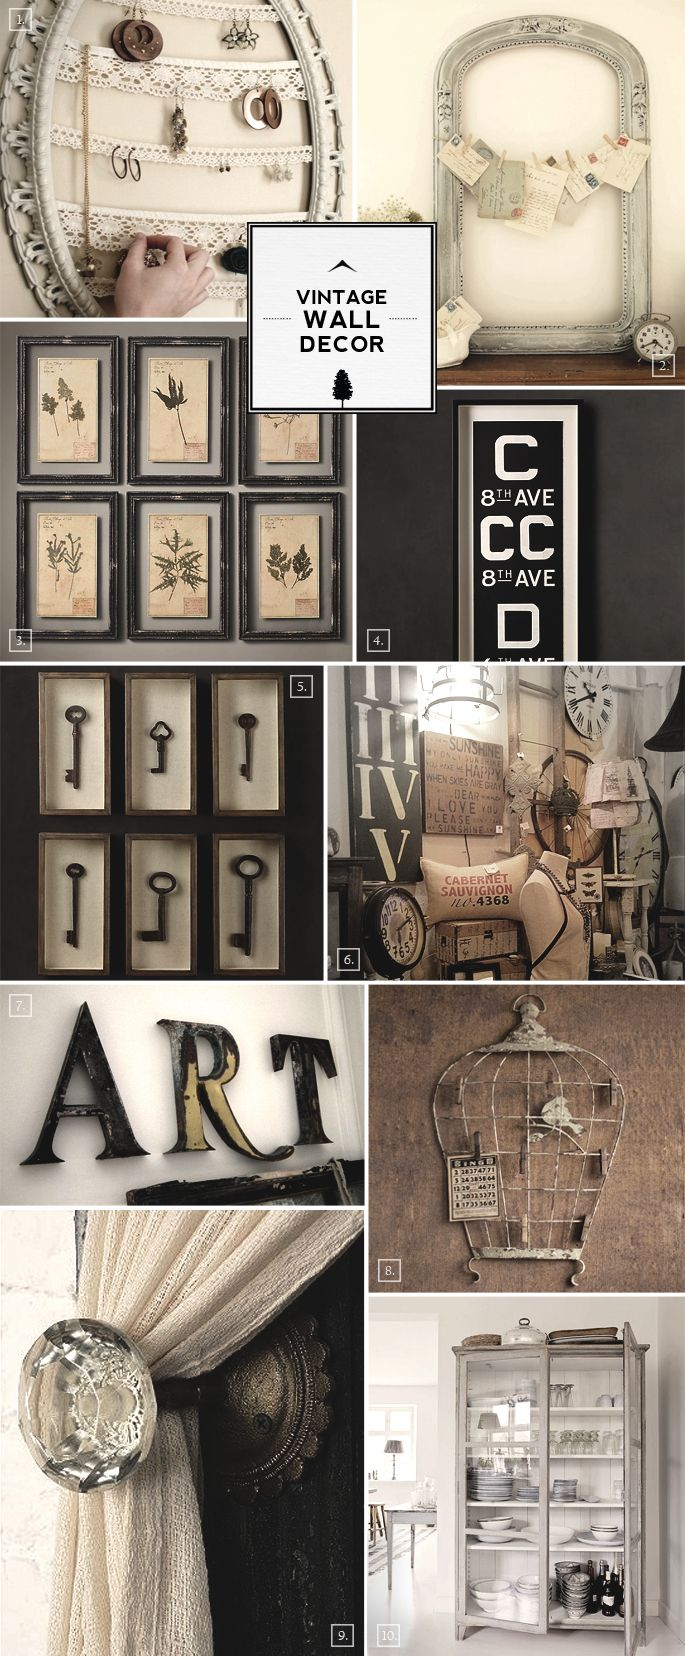 Vintage Wall Decor Ideas From Bird Cages To Designing With Frames Home Tree Atlas Walls